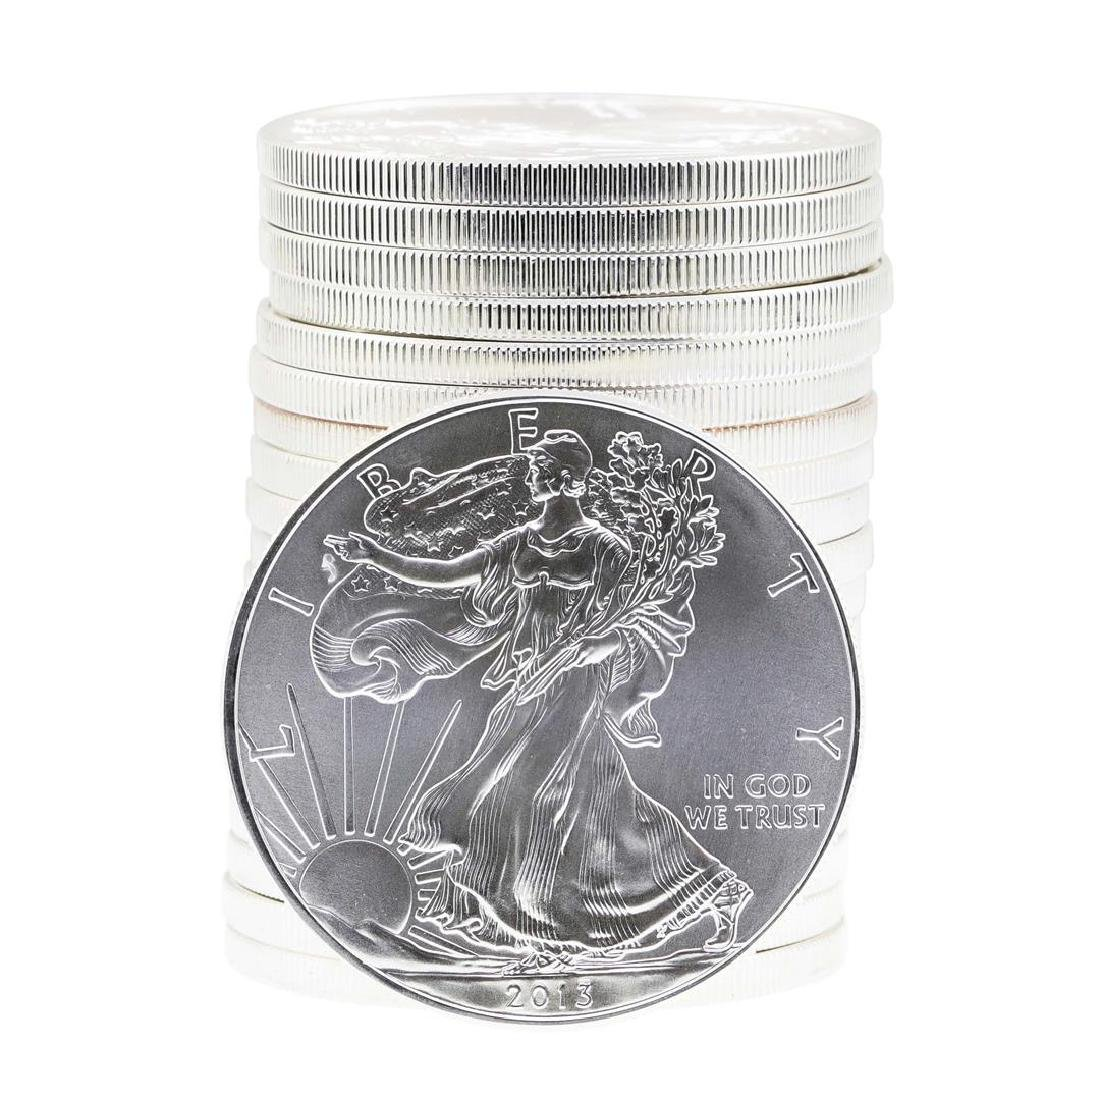 Roll of (20) 2013 $1 American Silver Eagle Brilliant